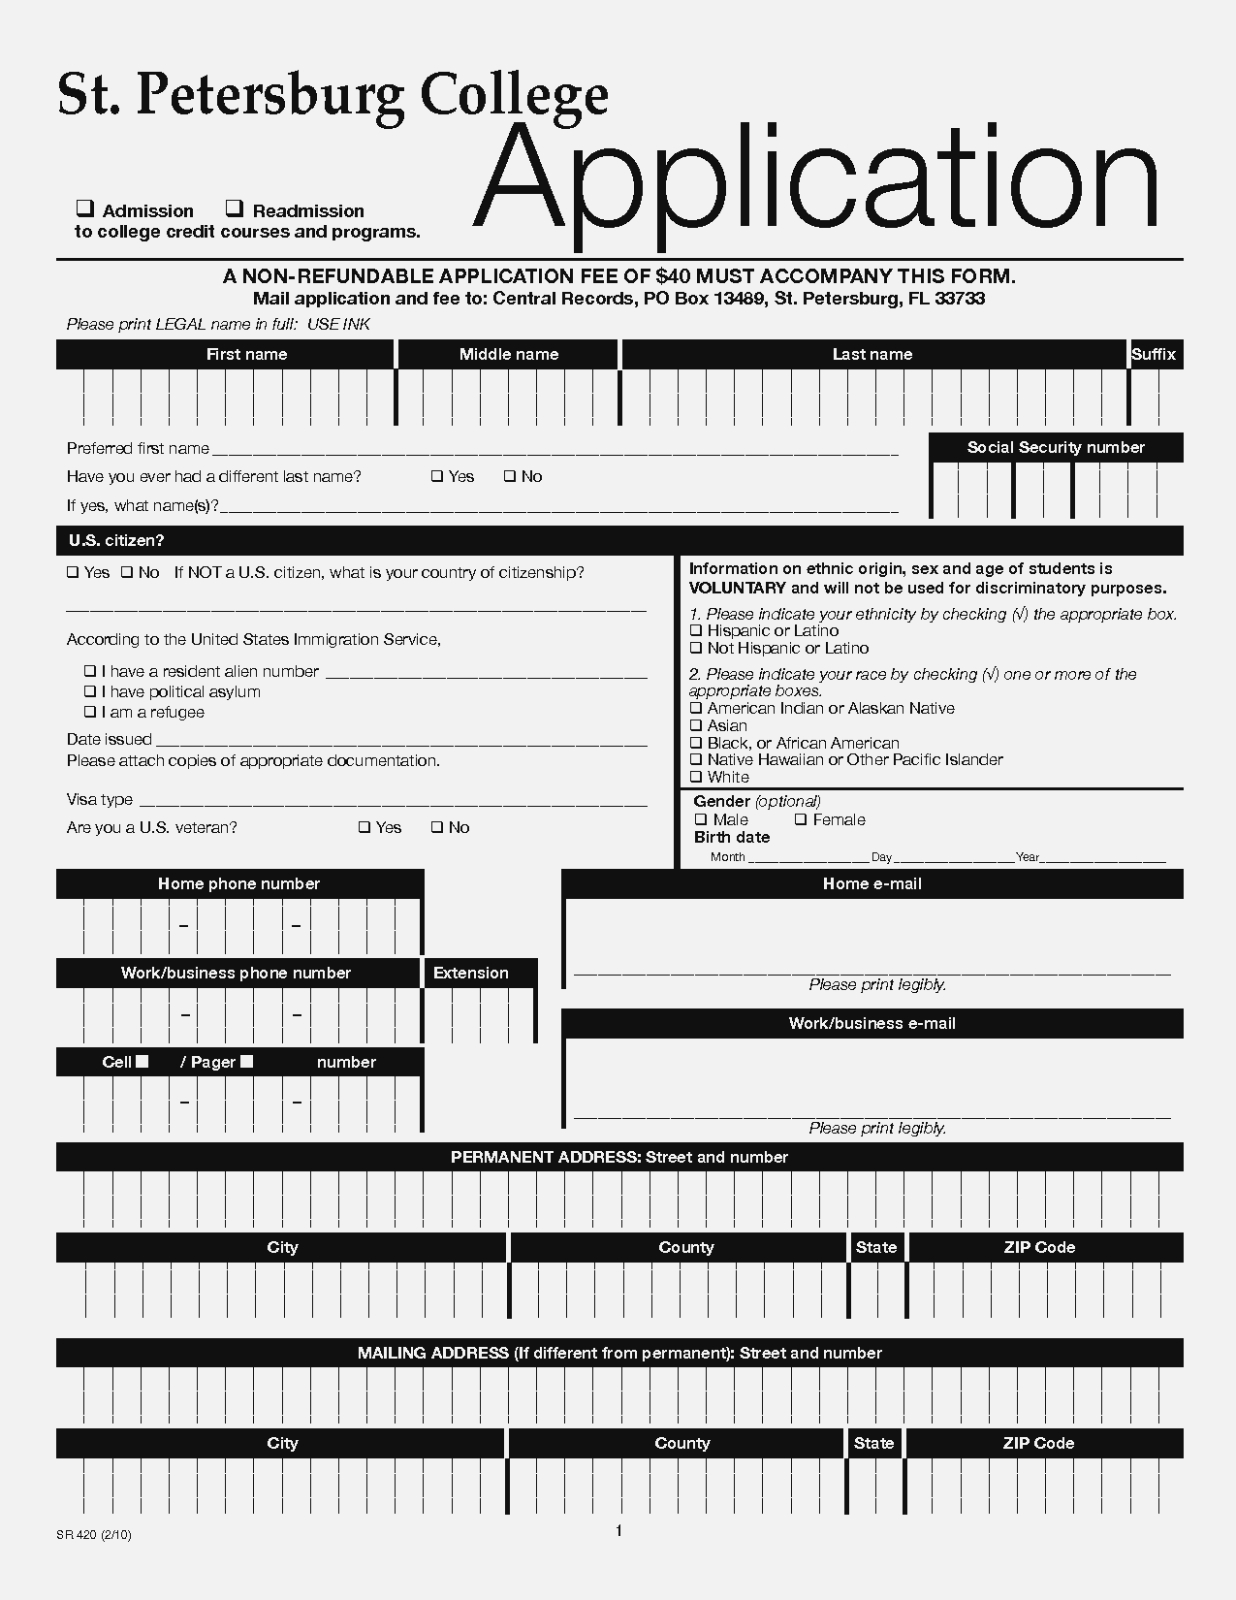 15 Awesome Things You Can | Realty Executives Mi : Invoice And - Free Printable Fafsa Application Form